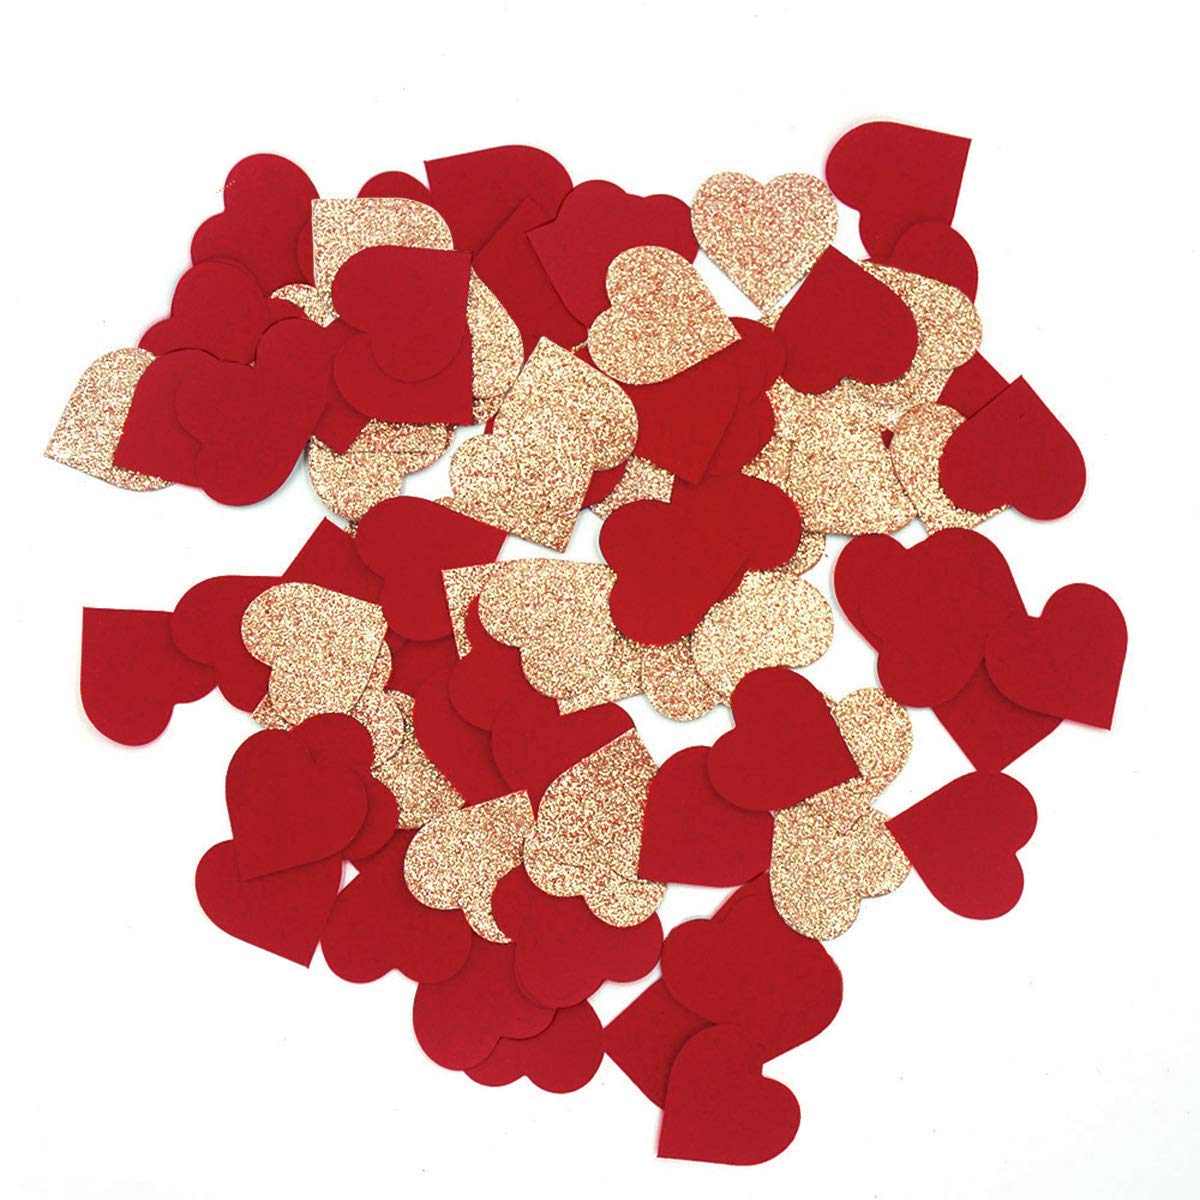 4159559af27fe NICROLANDEE Wedding Confetti Rose Gold Glitter Party Confetti Red Suede  Heart Shaped Table Confetti for Bridal Shower Valentine's Day Hen Night  Party1 ...